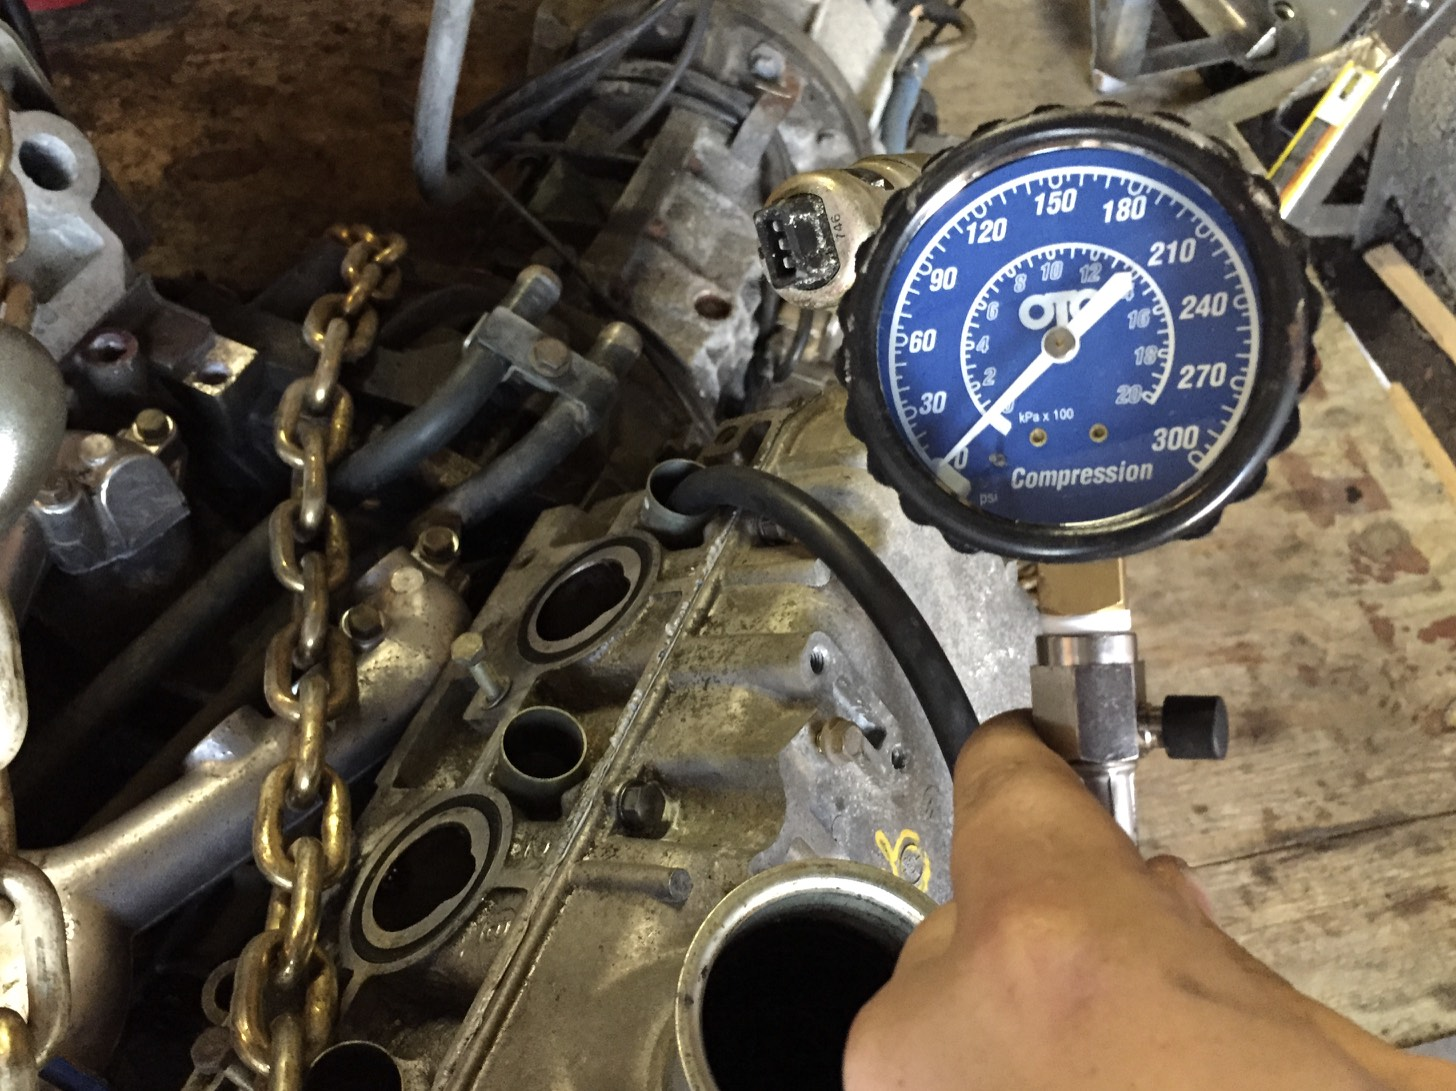 The gauge installed in the #1 cylinder, ready for the engine to be cranked.